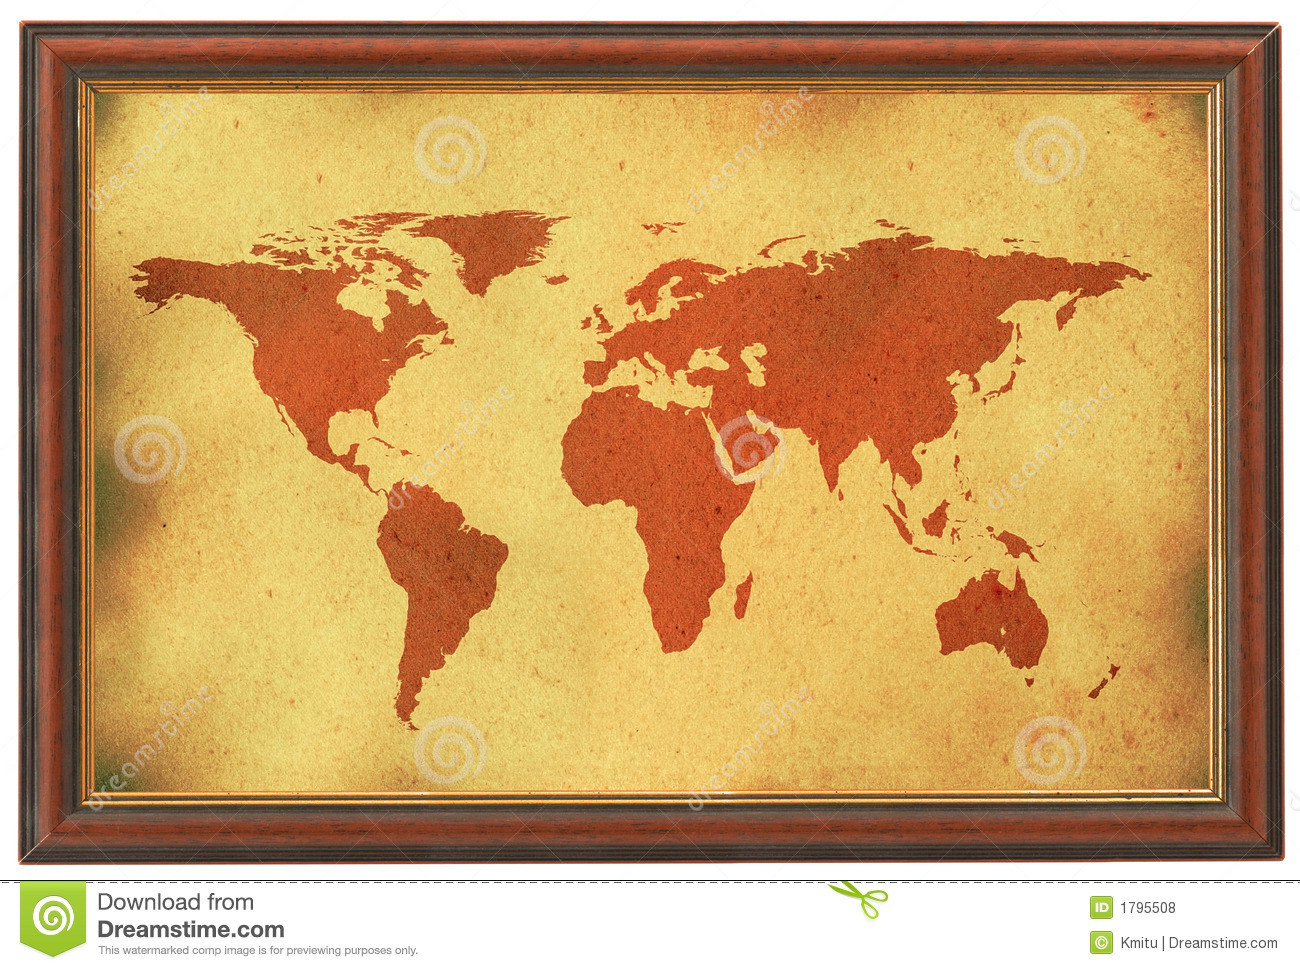 Old world map in wooden frame stock photo image of cosmos old world map in wooden frame gumiabroncs Image collections